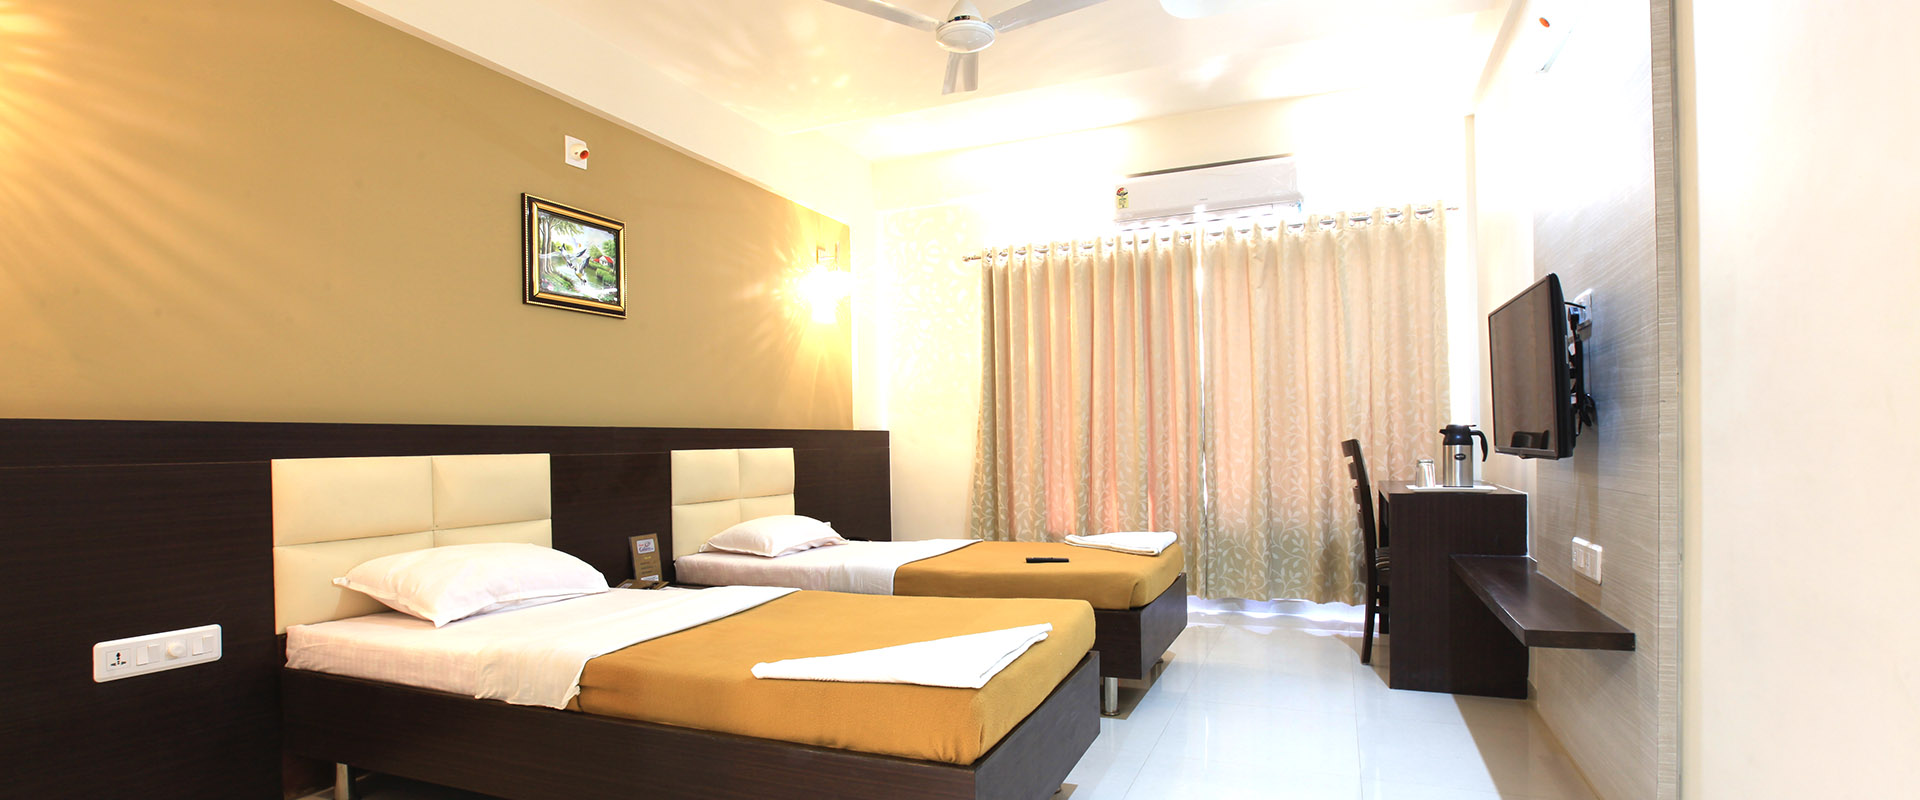 hotel gallexy inn gandhinagar , Best hotel in gandhinagar